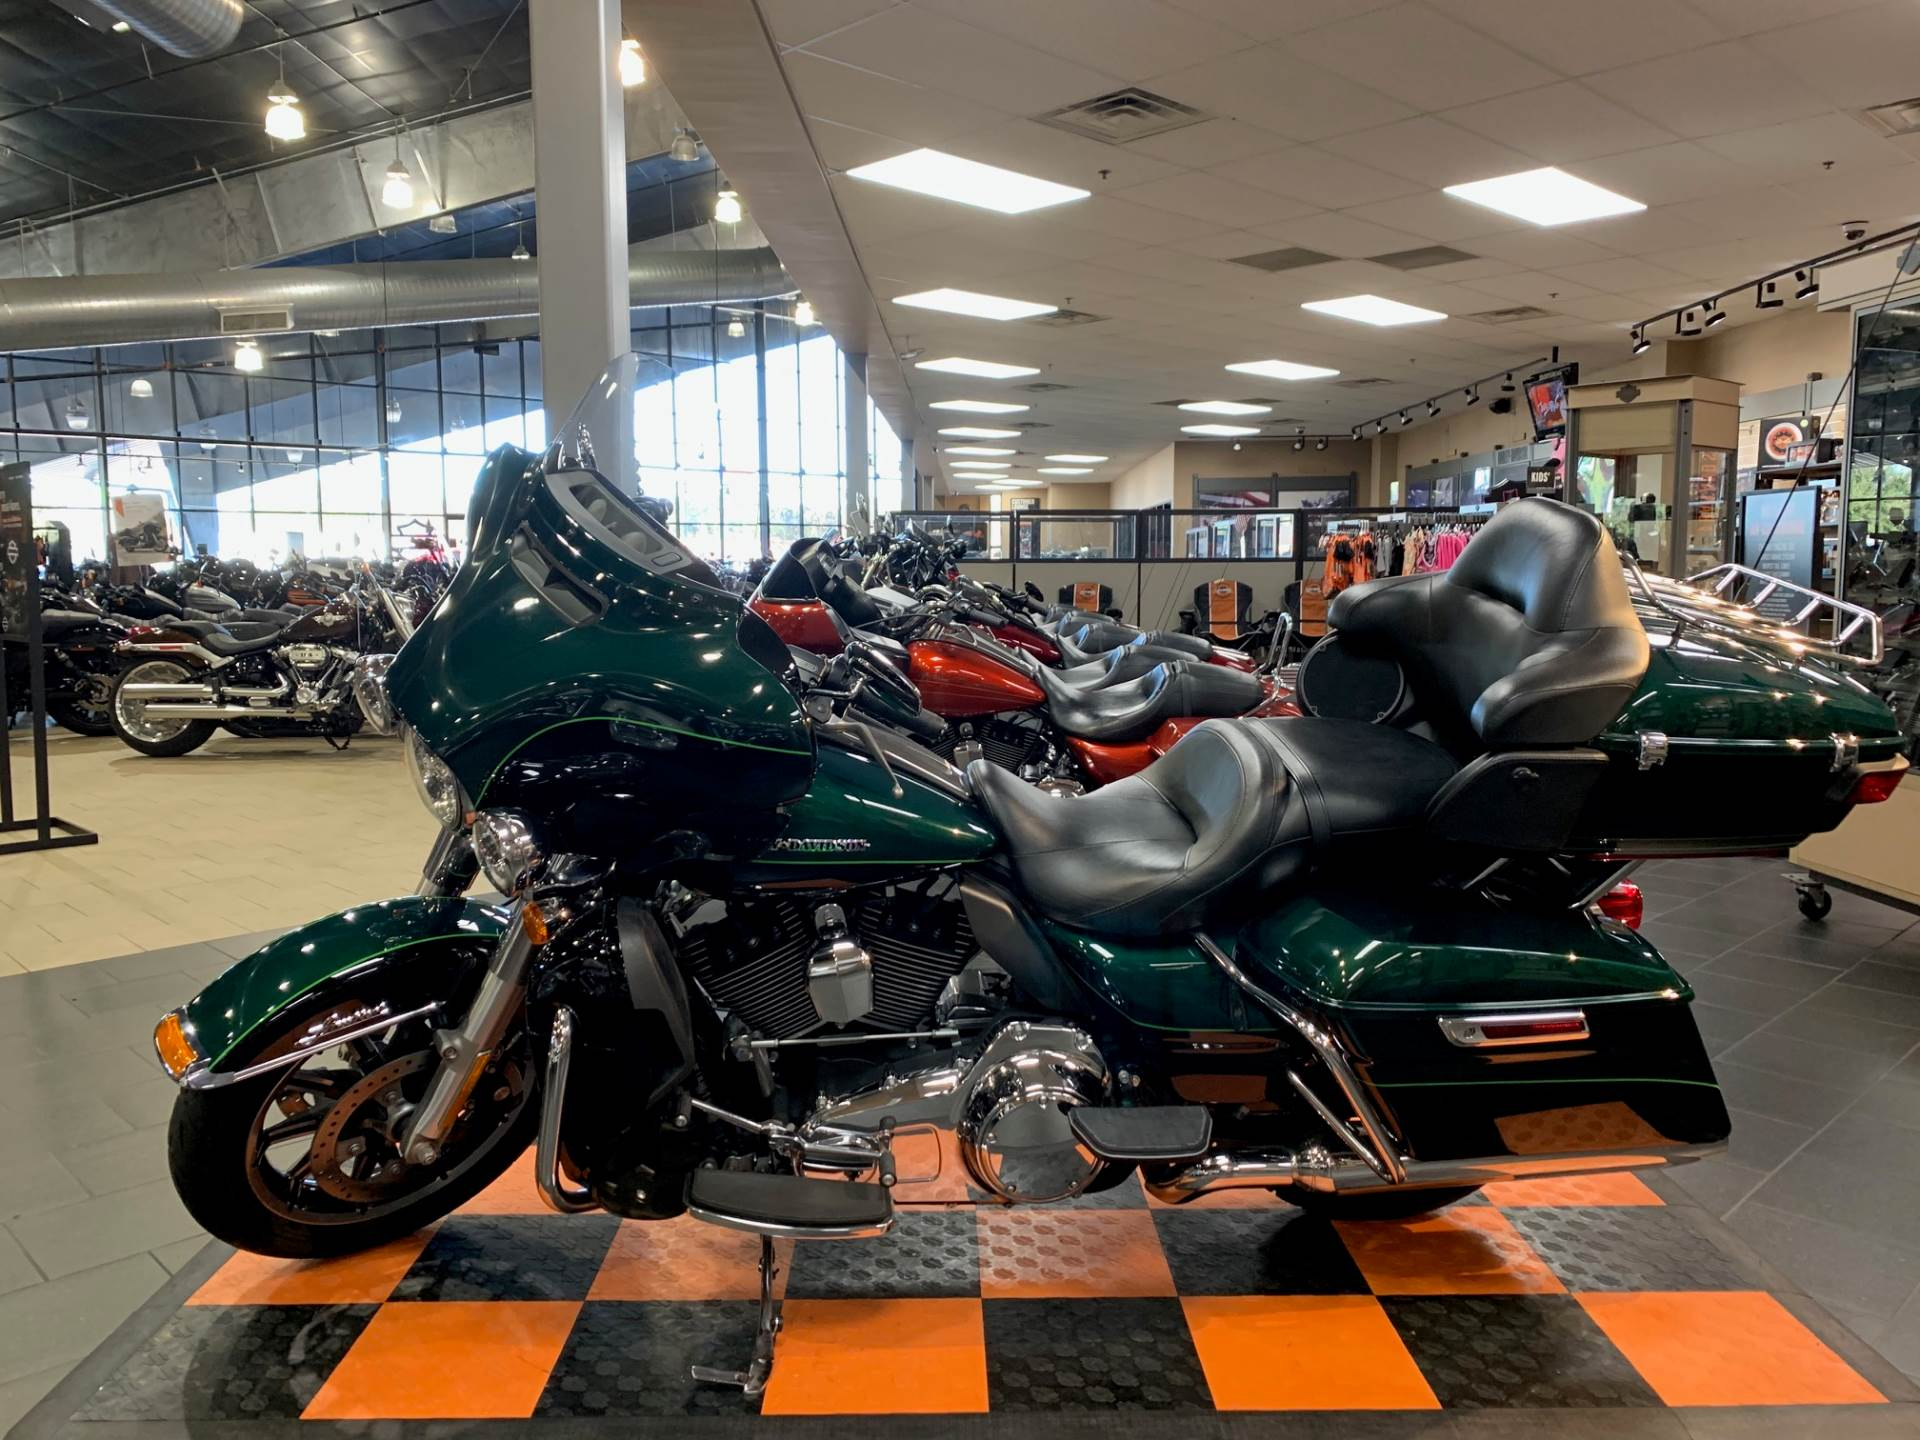 2015 Harley-Davidson Ultra Limited in The Woodlands, Texas - Photo 3